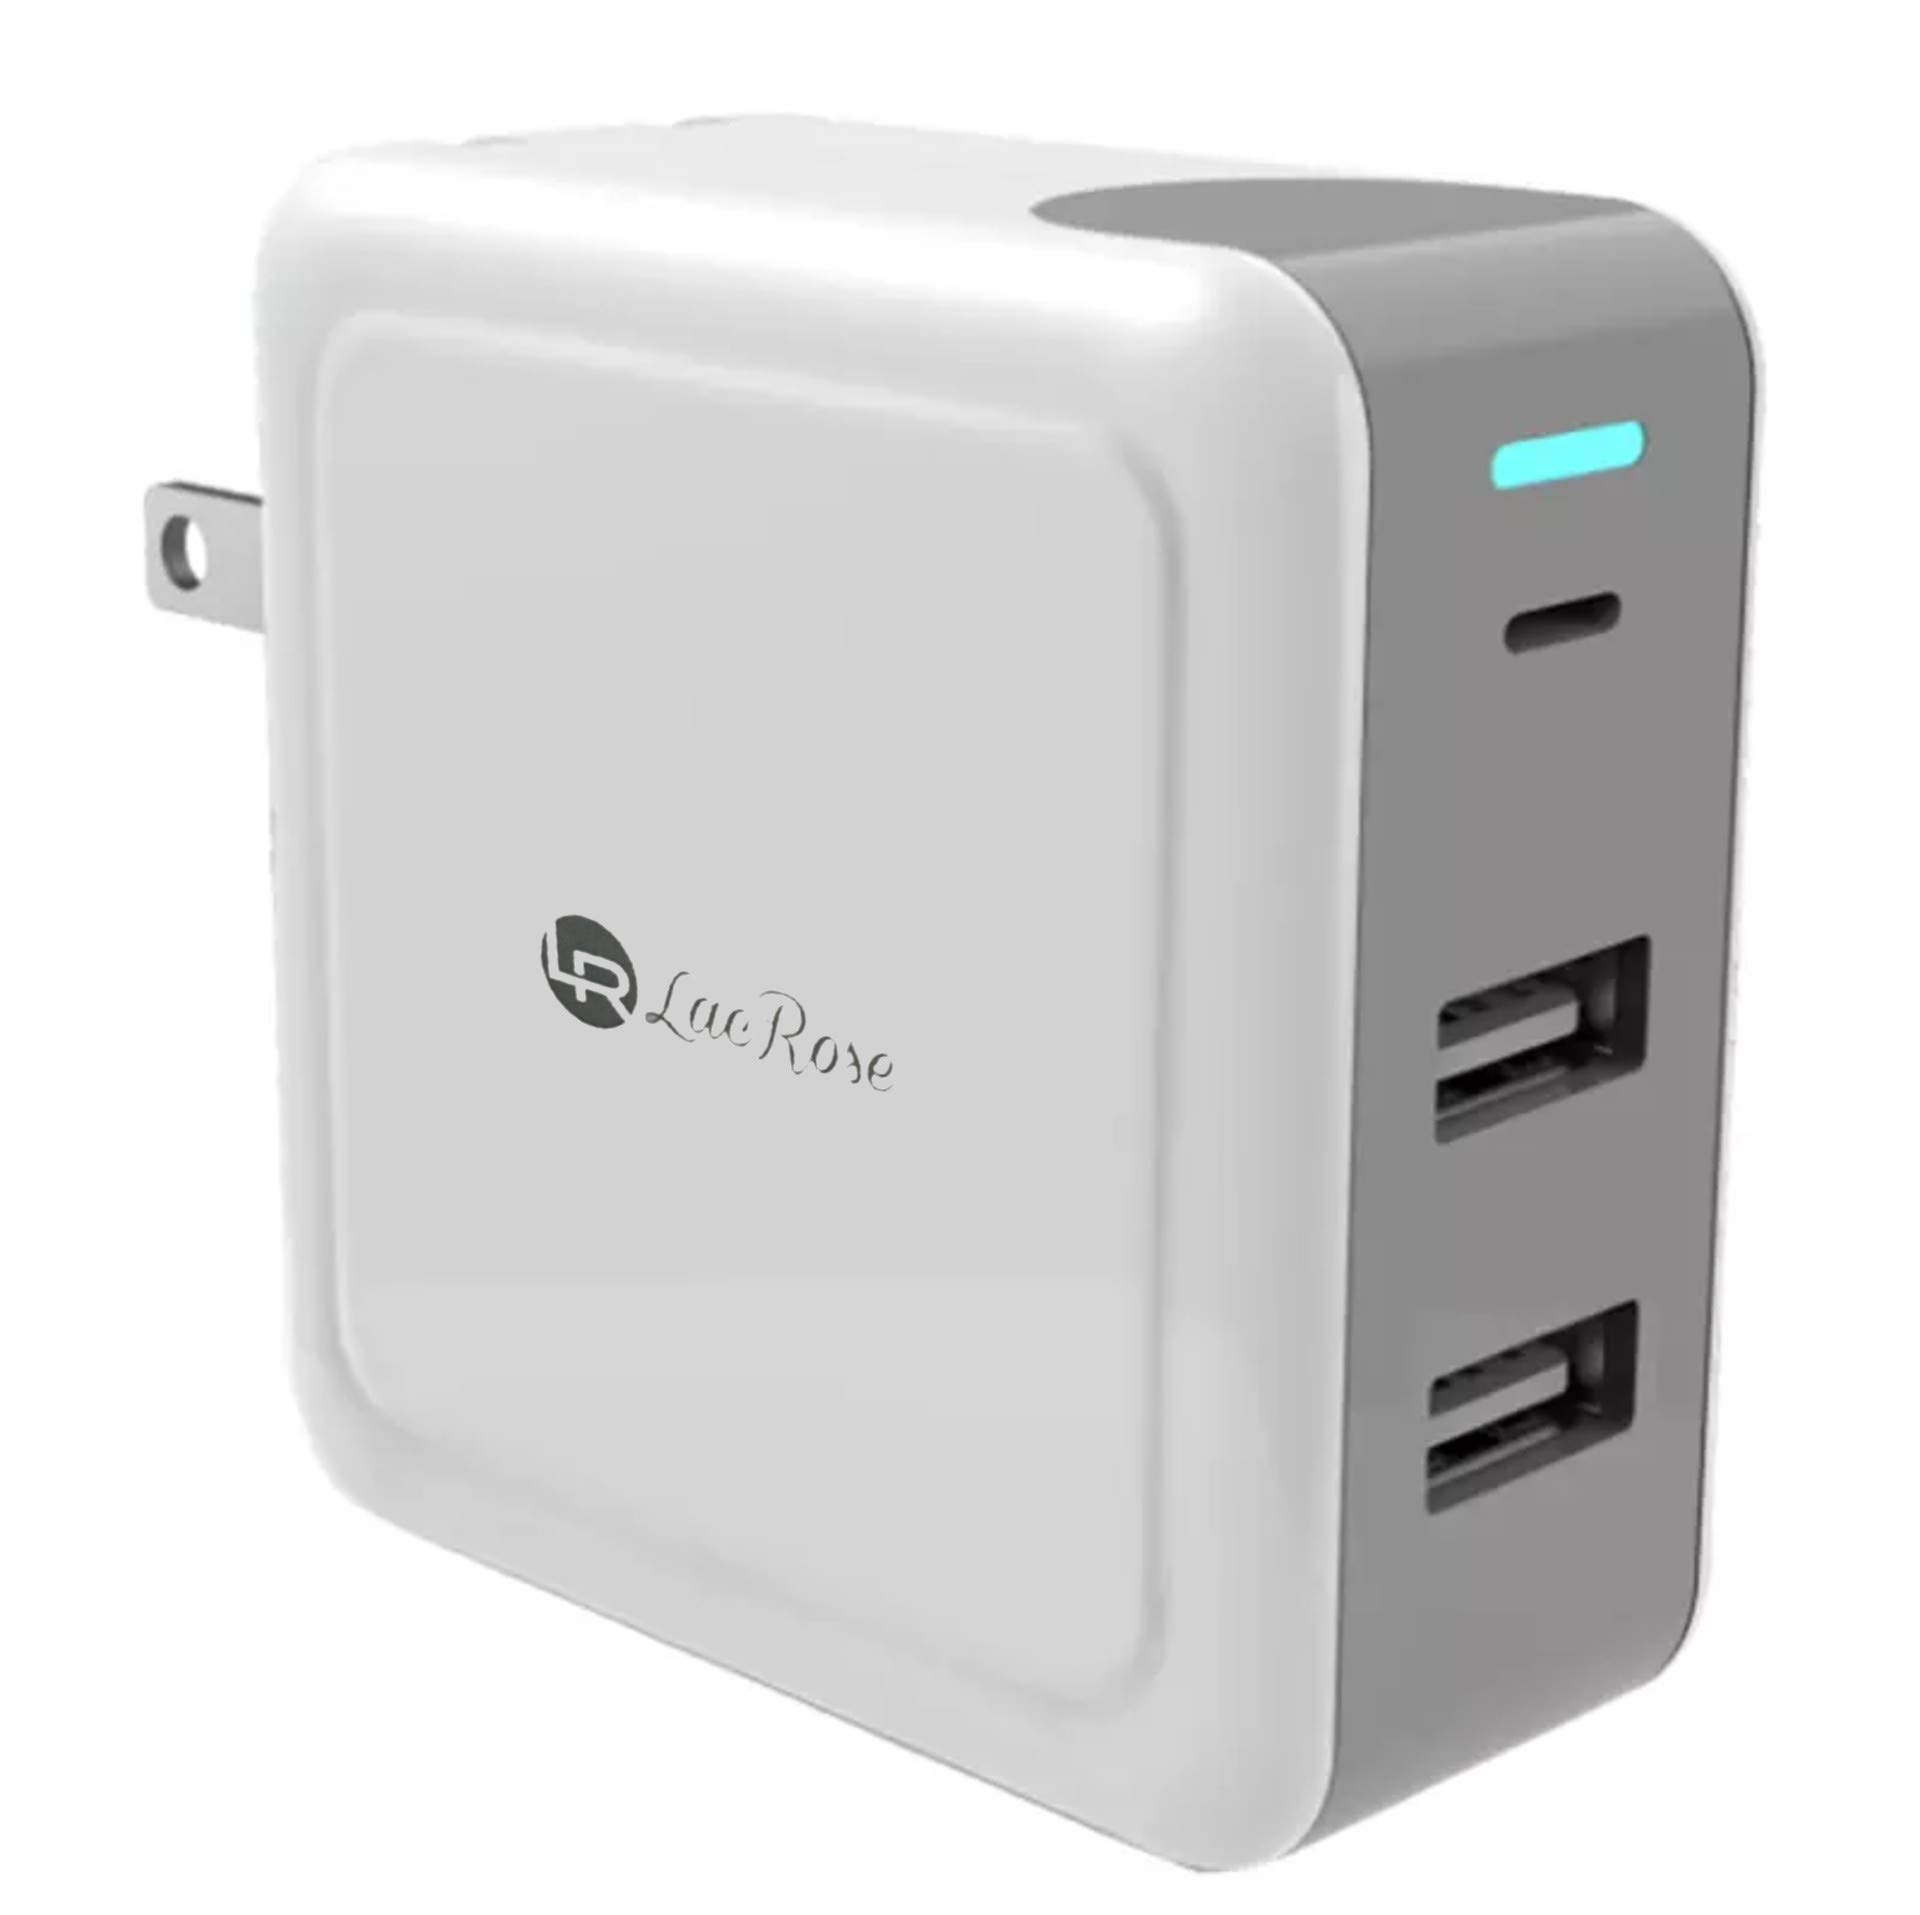 USB Type-C Wall Charger, LacRose PD Charger with 57W Power Delivery 3.0 & Dual Port USB Charger, Compatible MacBook/Pro/Air, iPad Pro, Dell XPS, iPhone, Galaxy S10/S10+/Note8 /Pixel 2/3/ XL, MateBook